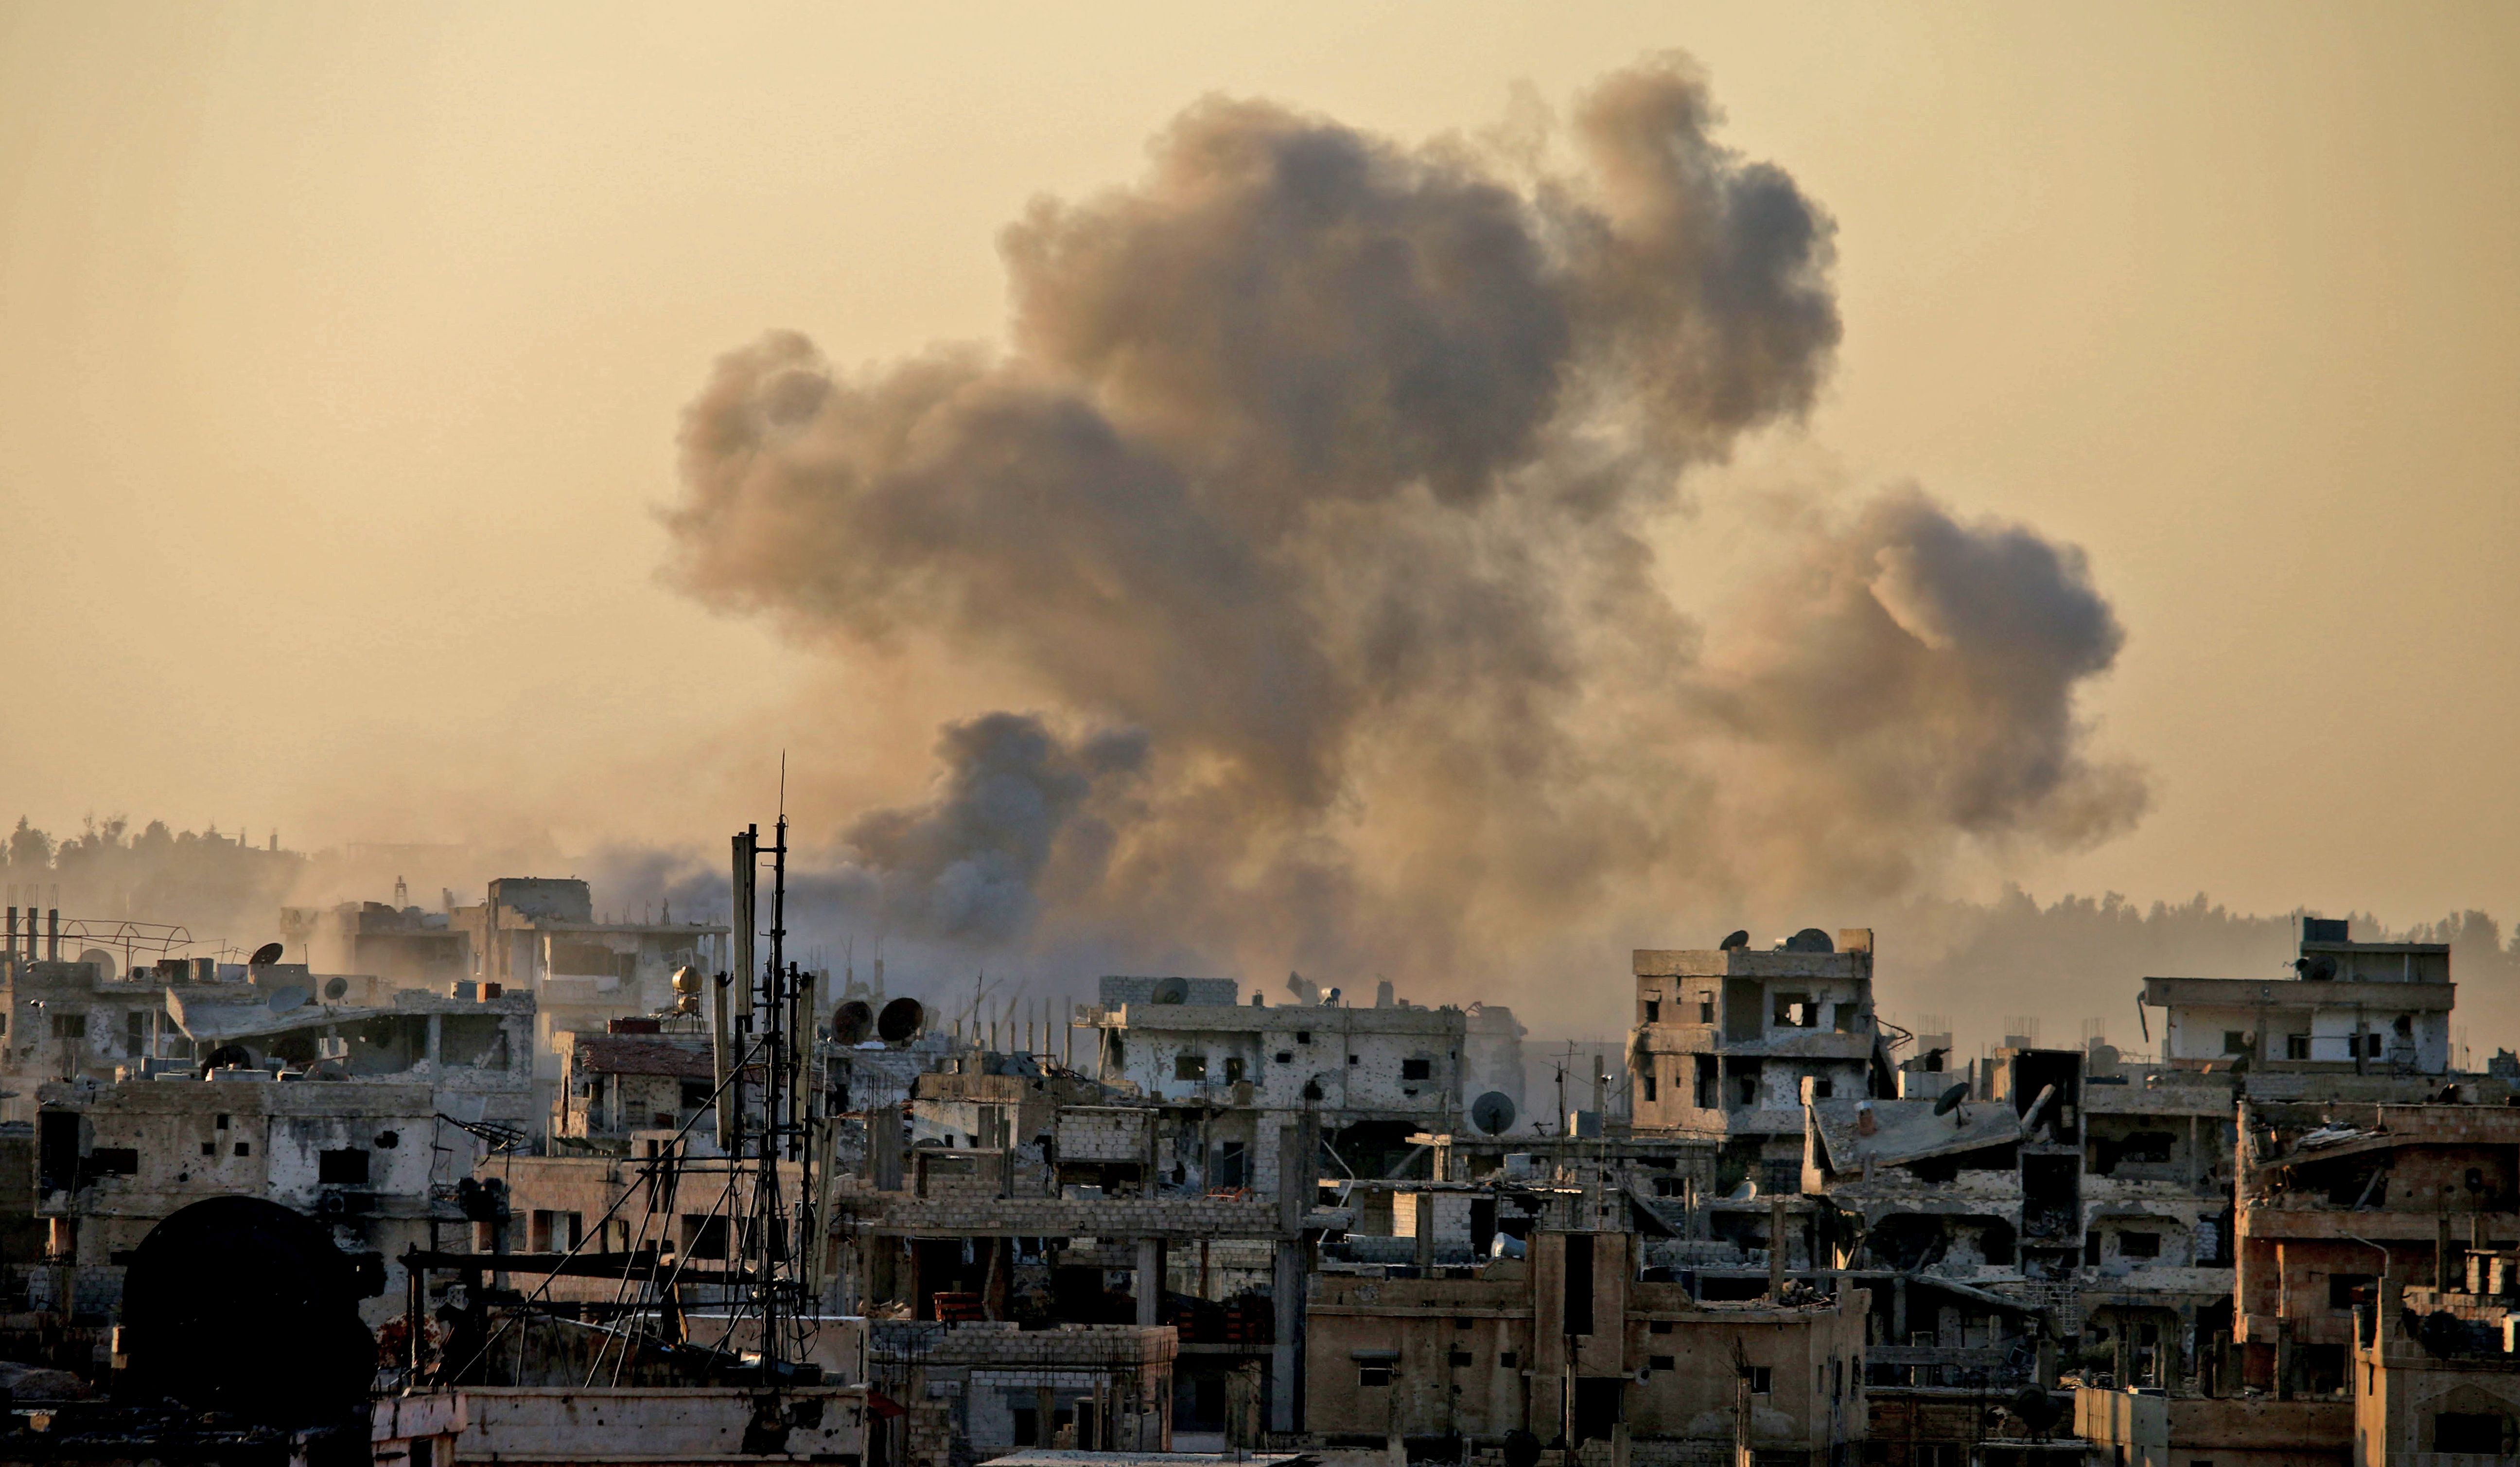 TOPSHOT - Smoke billows during reported shelling by Syrian government forces in the rebel-held area of Daraa, in southern Syria, on December 12, 2016. / AFP PHOTO / MOHAMAD ABAZEED / TT / kod 444